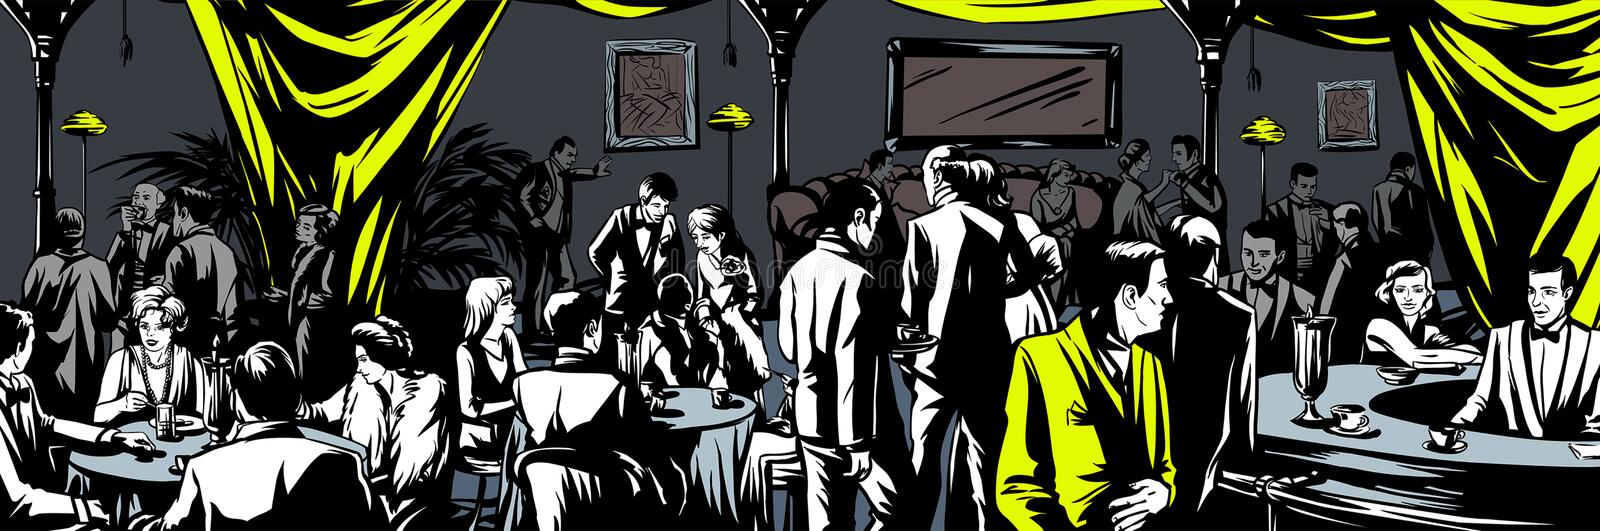 Underground bar Prohibition. All elements layered black line drained vector illustration